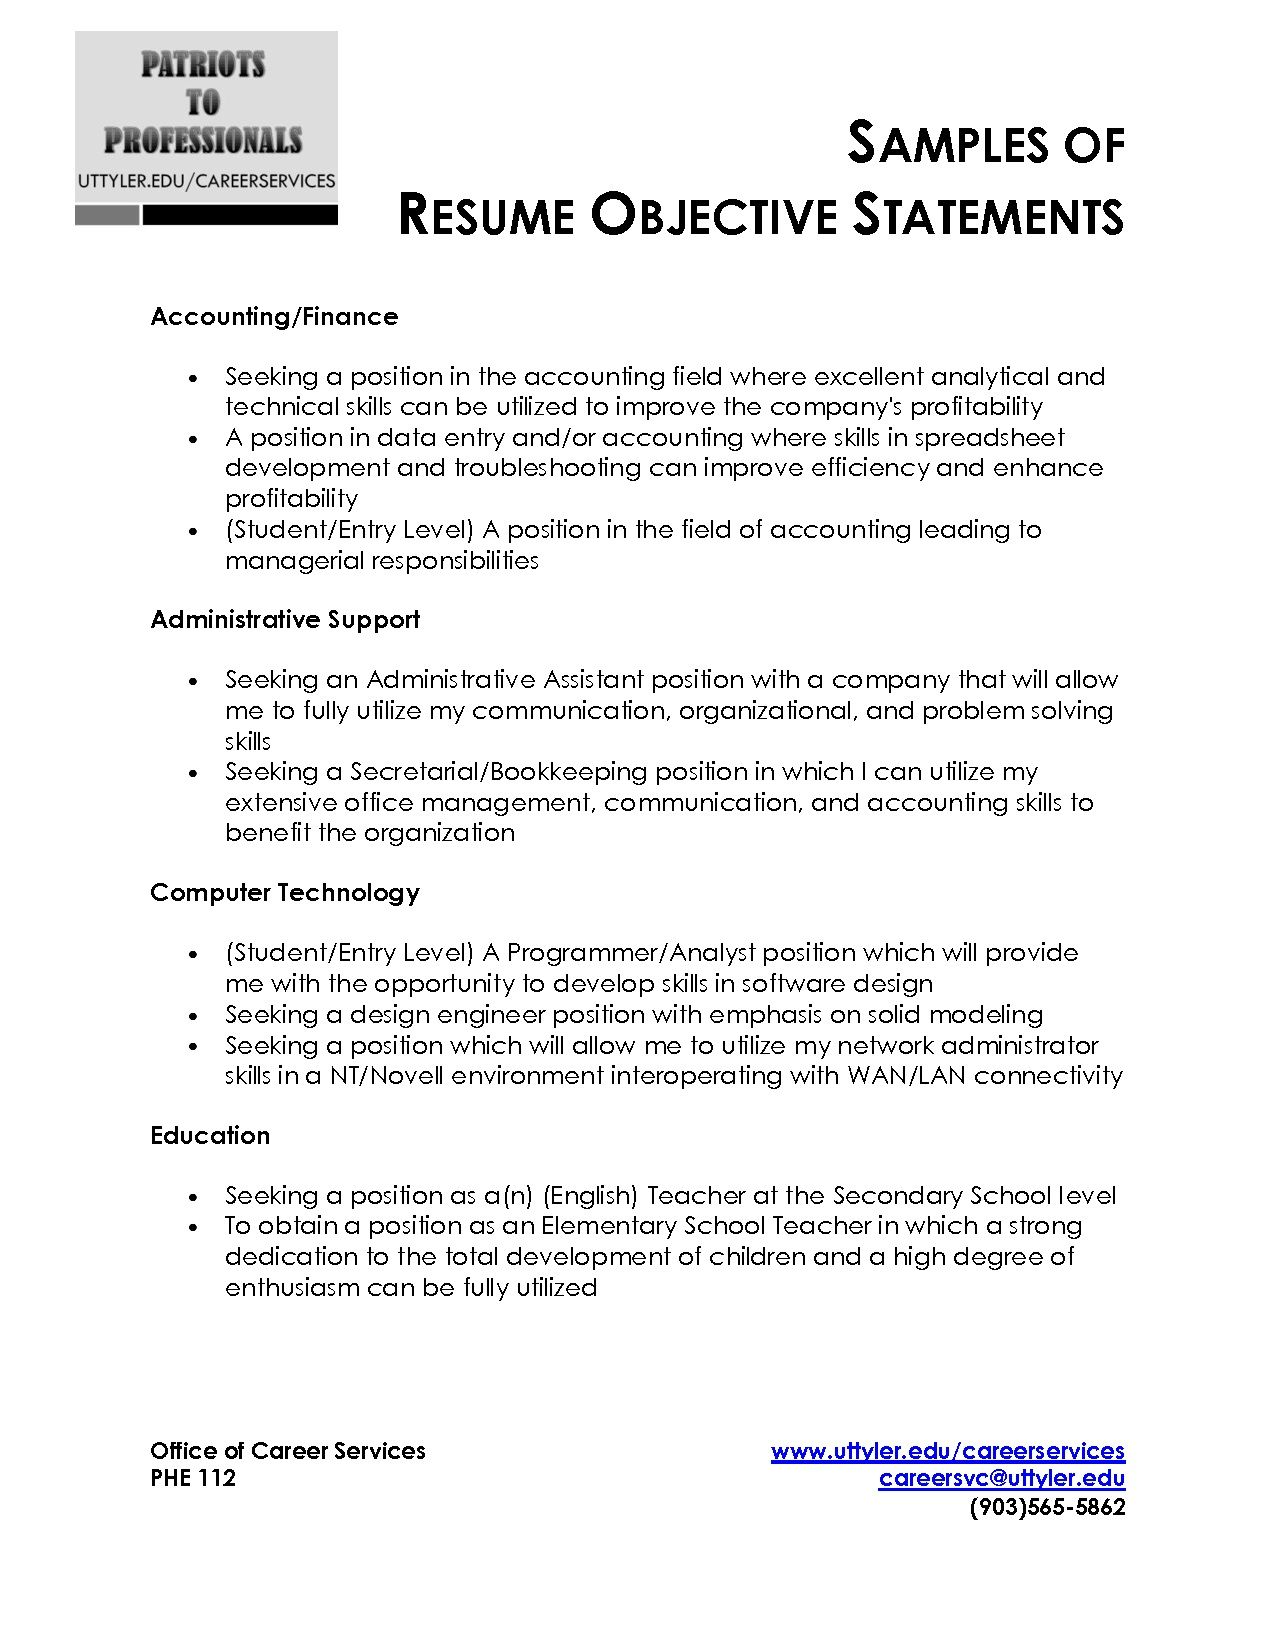 Resume Objective Examples For It Professionals Sample Statements Of Lt A Href Quot